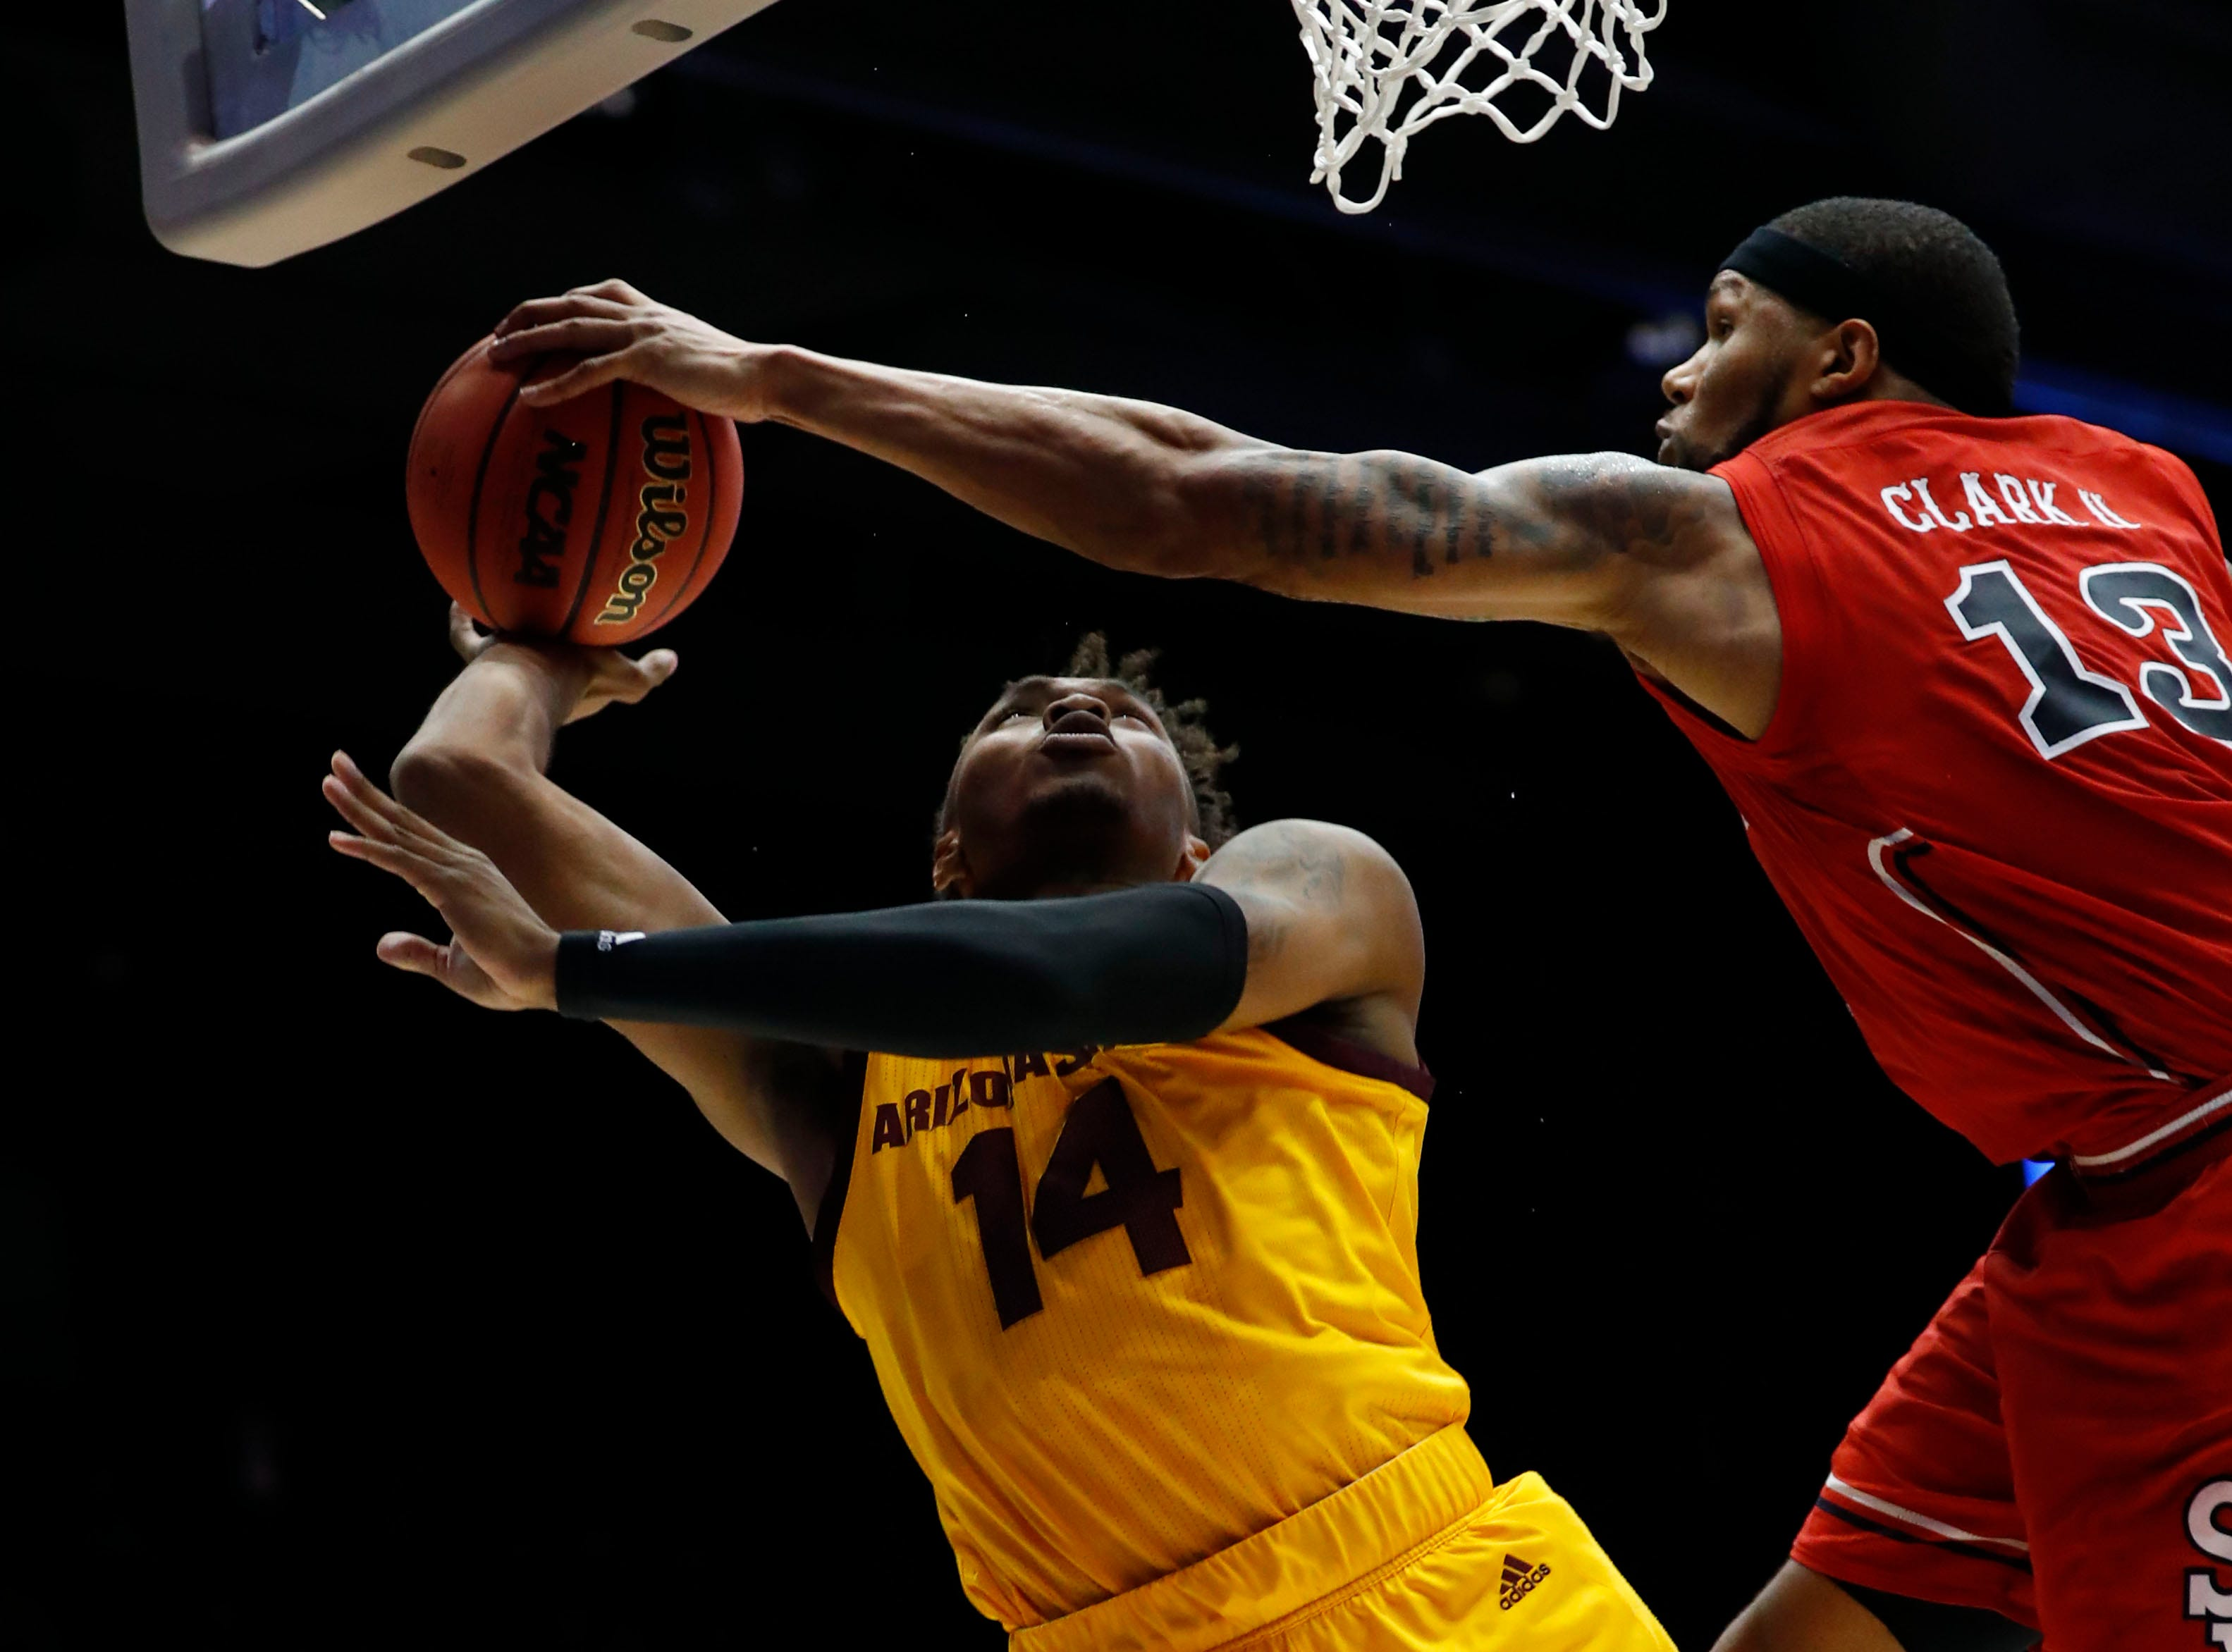 St. John's Red Storm forward Marvin Clark II (13) blocks a shot from Arizona State Sun Devils forward Kimani Lawrence (14) in the second half.